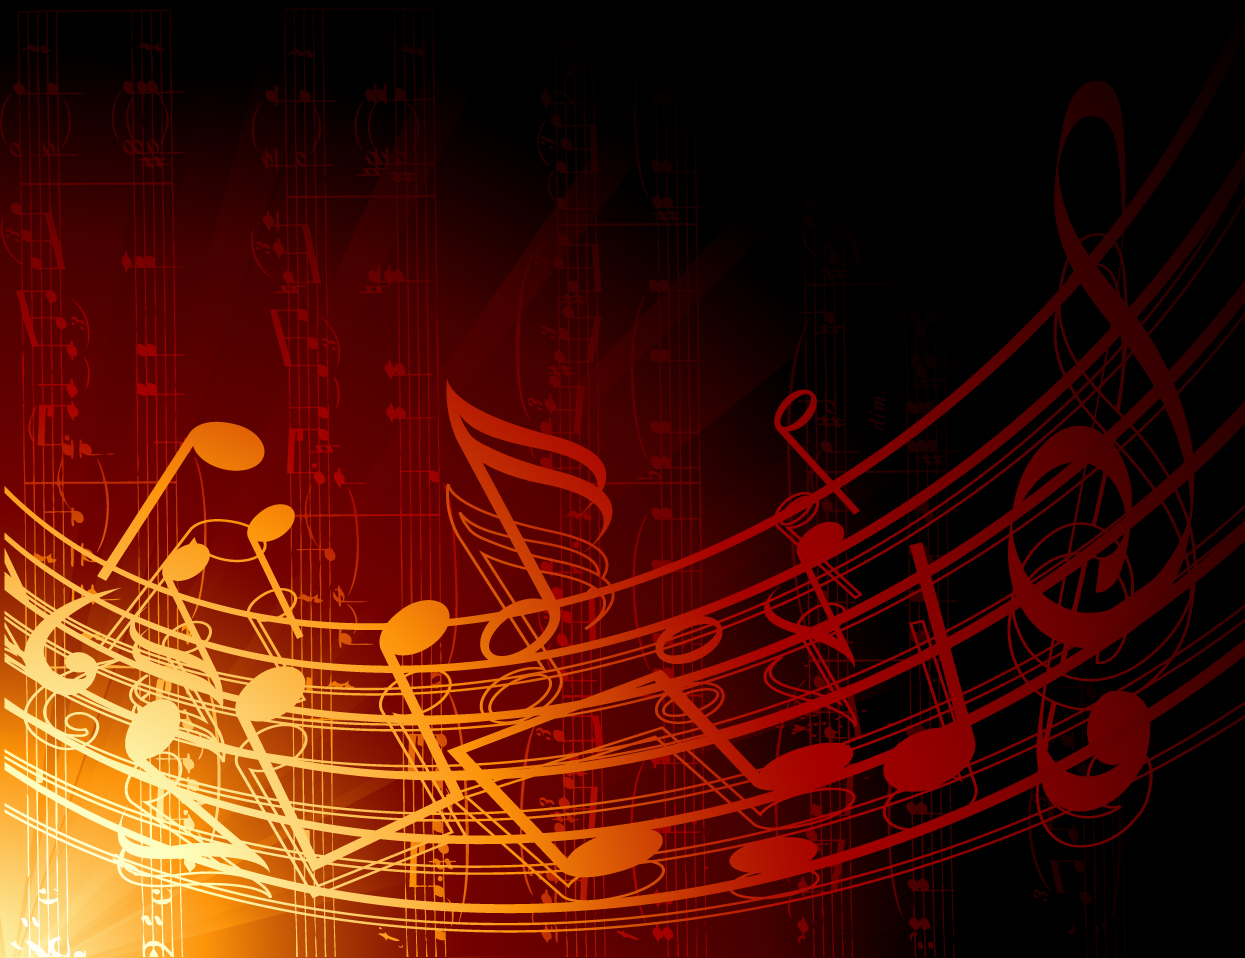 Music Abstract Backgrounds 4008 Wallpaper WallDiskPaper 1245x958